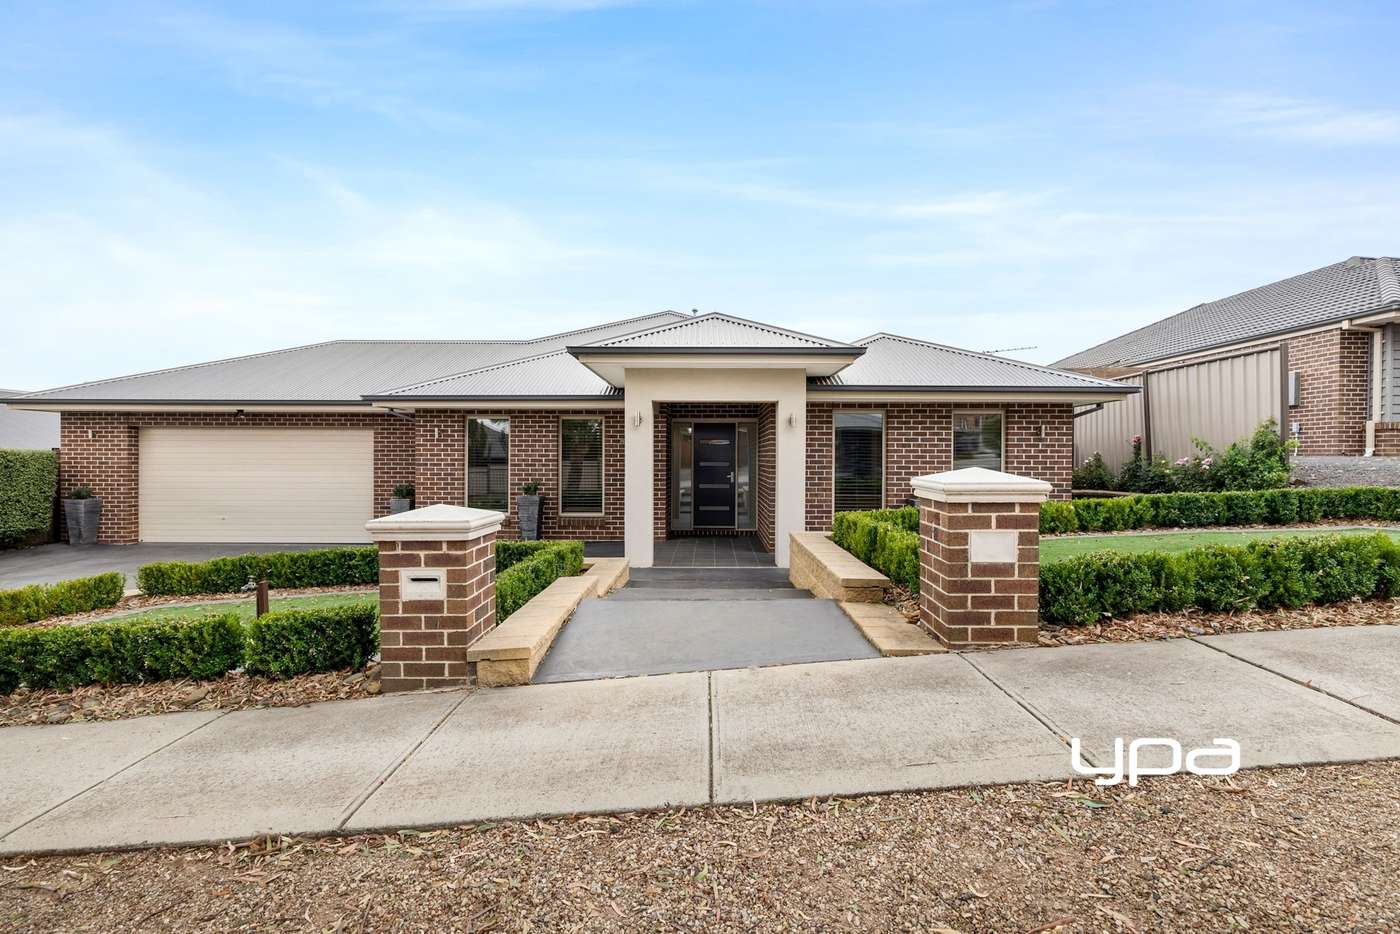 Main view of Homely house listing, 8 Waterloo Rise, Sunbury VIC 3429